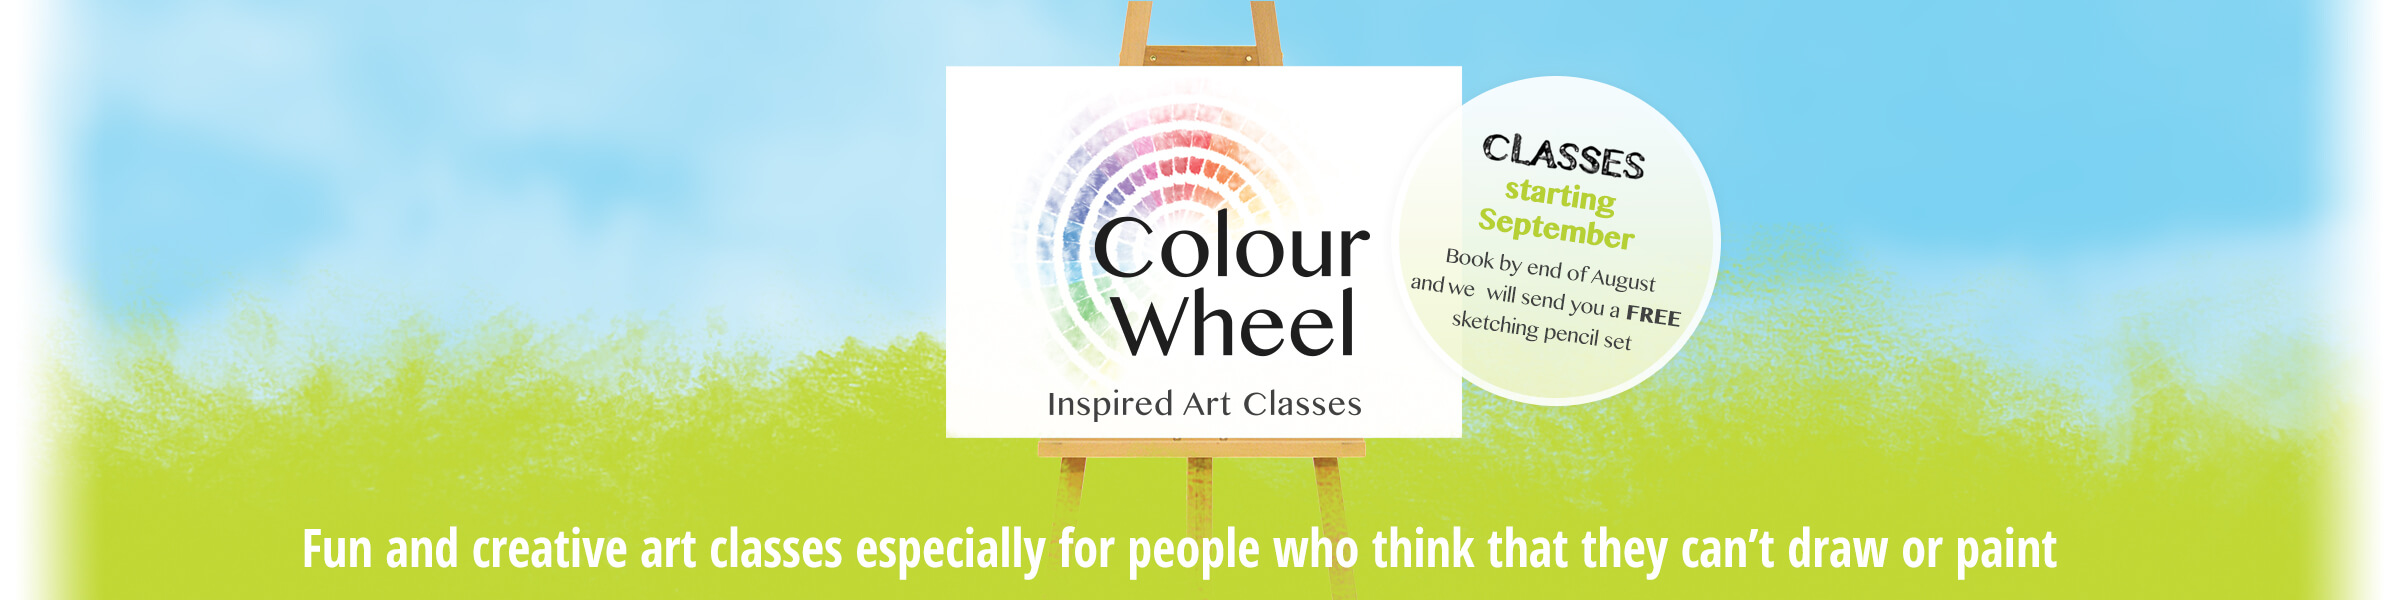 Colour Wheel - Classes for Adult Beginners